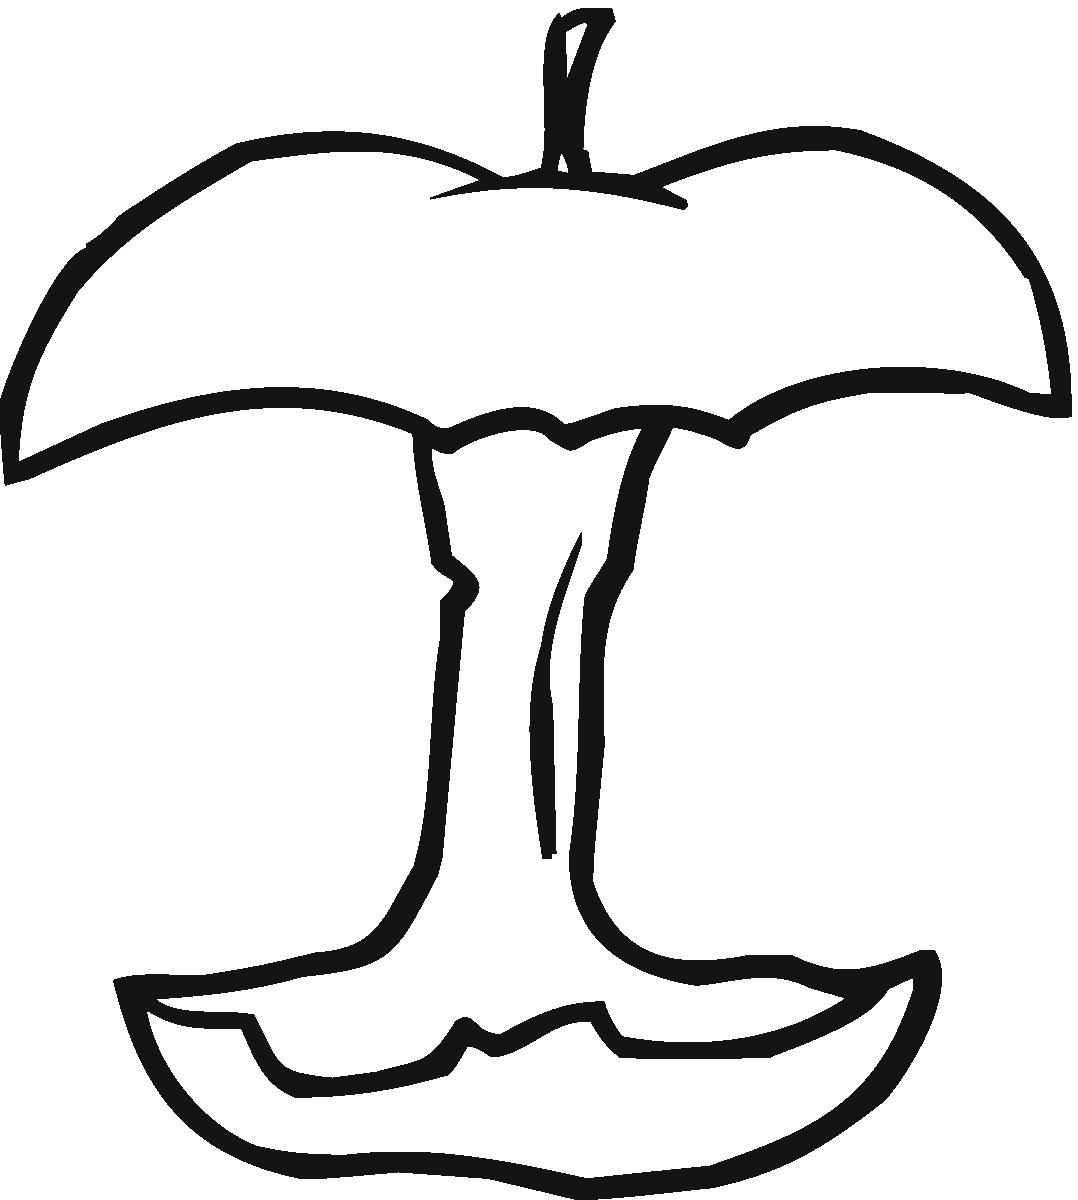 a apple coloring sheet apple coloring pages coloring pages to download and print sheet coloring a apple